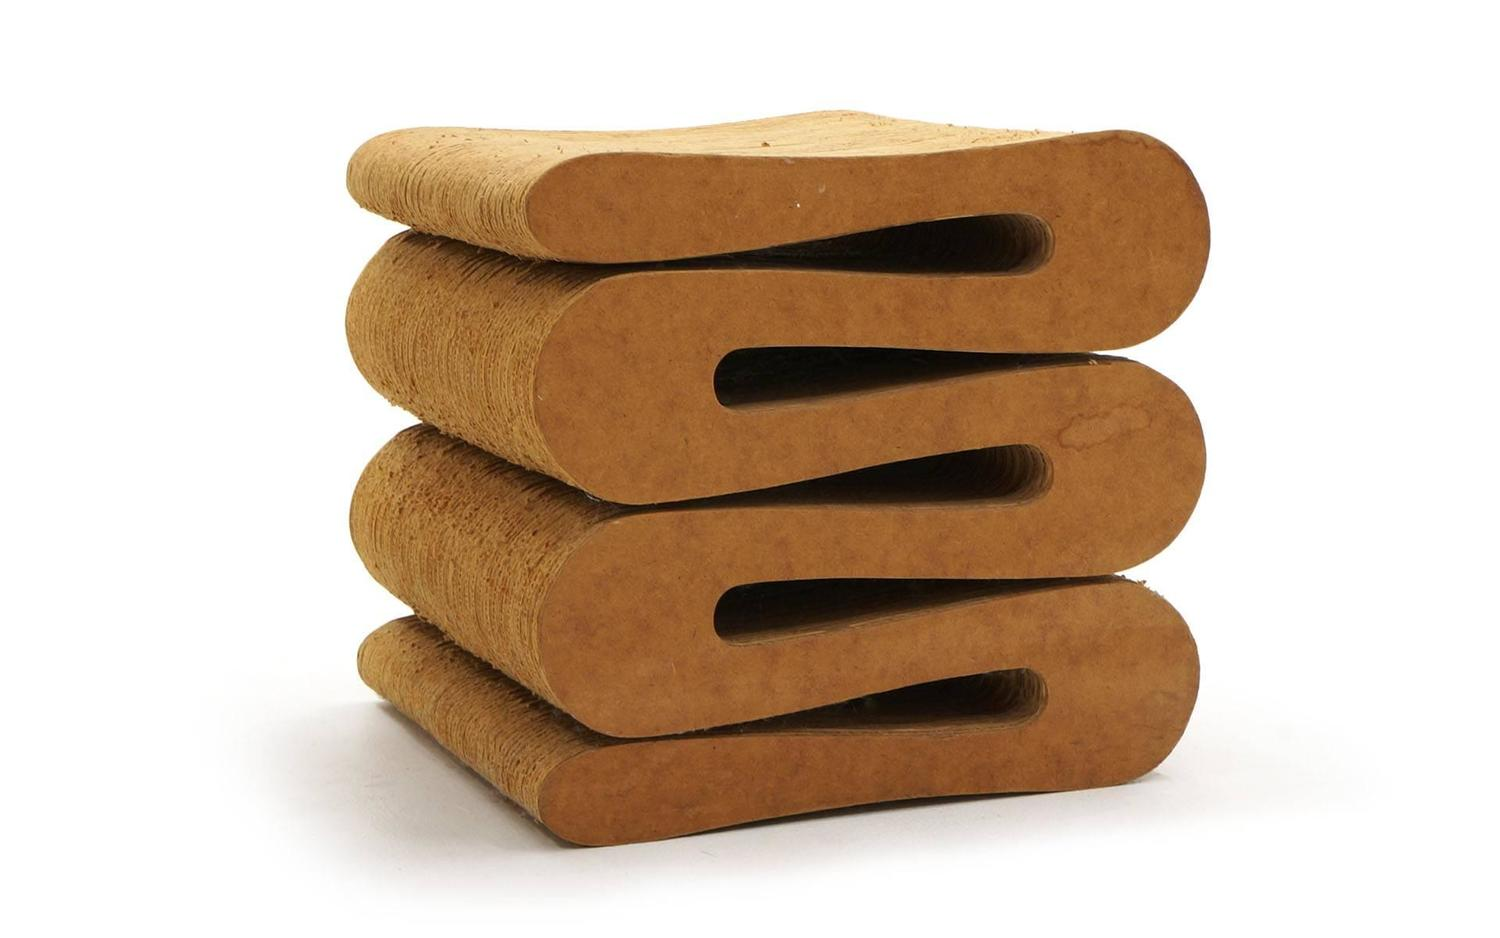 frank gehry cardboard chair cushion for bed original 1972 wiggle and